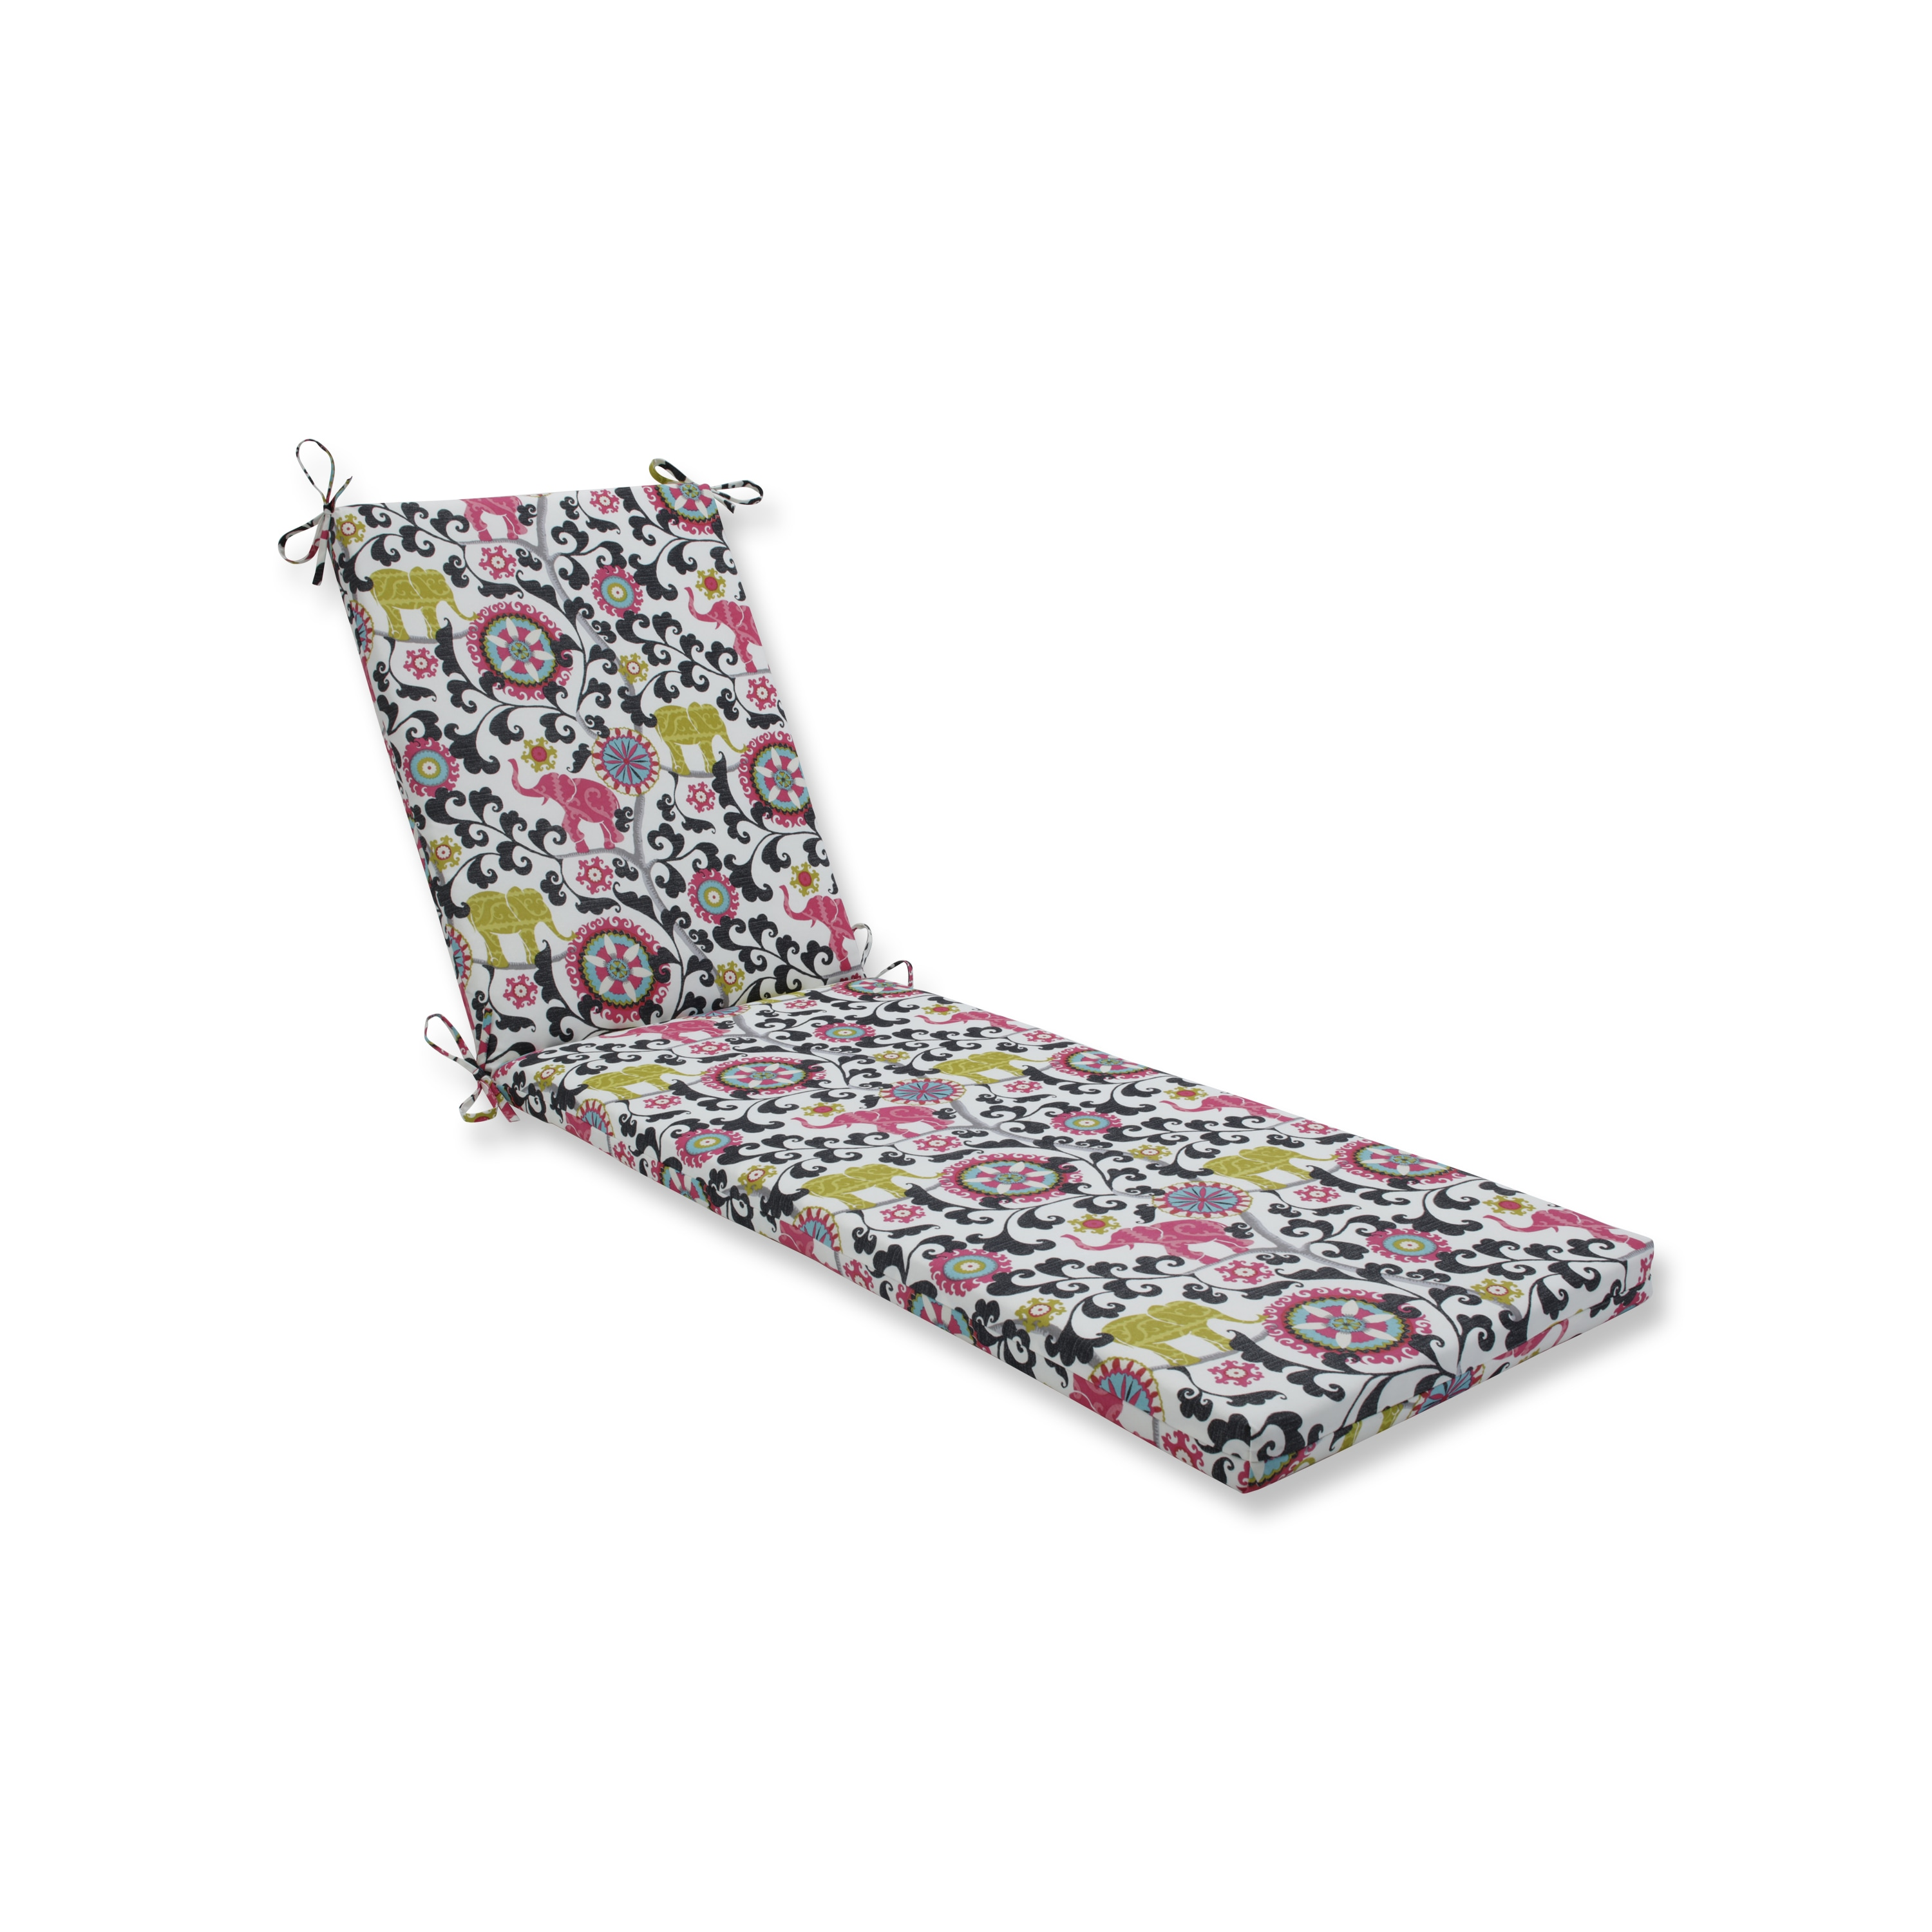 Pillow Perfect Outdoor/Indoor Menagerie Spectrum Chaise Lounge Cushion 80x23x3 (Chaise Lounge Cushion 80x23x3)